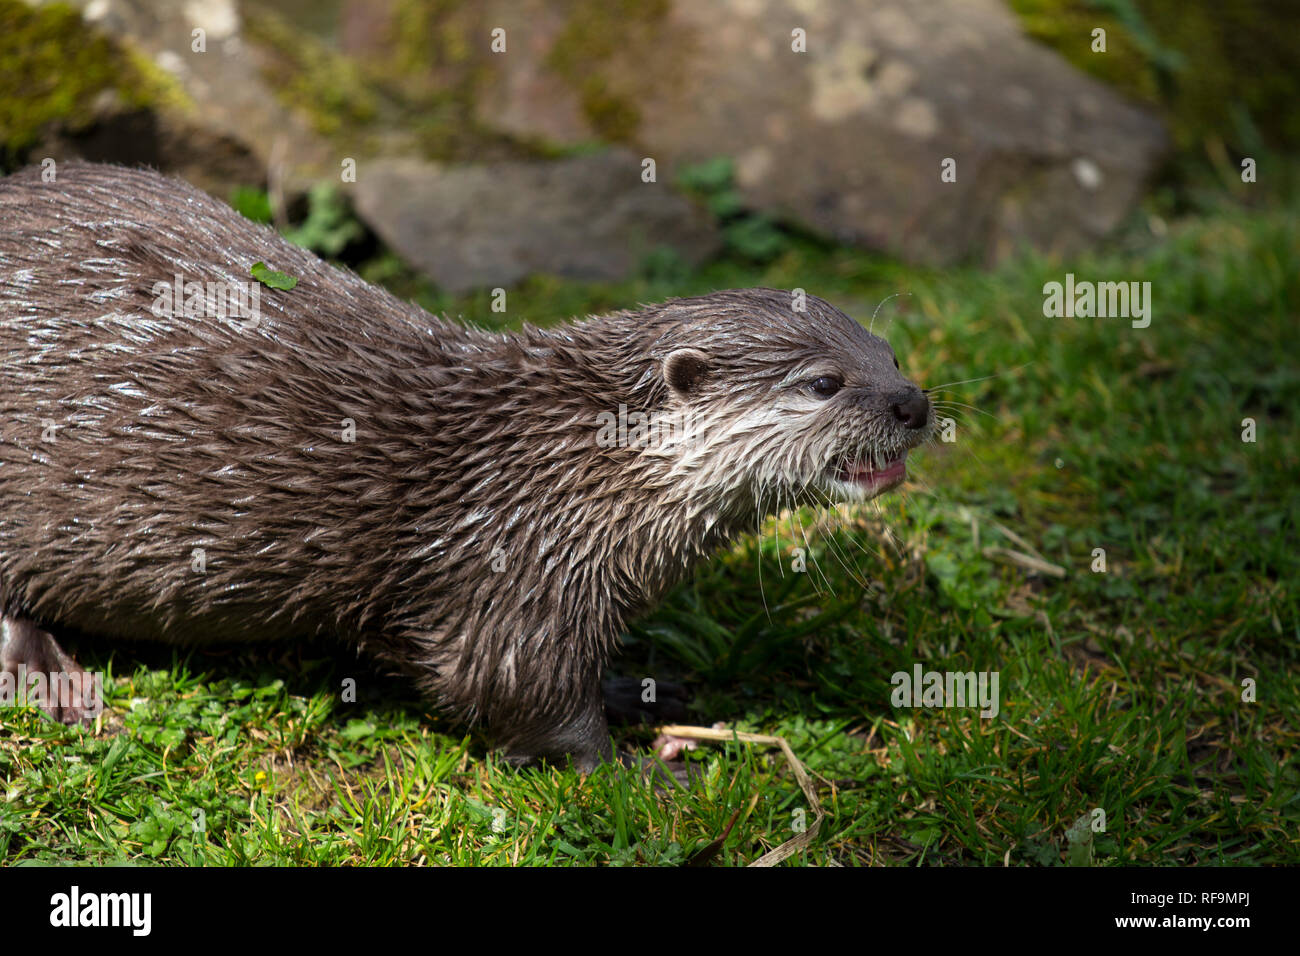 A Short Clawed Otters snarls at another Otter - Stock Image